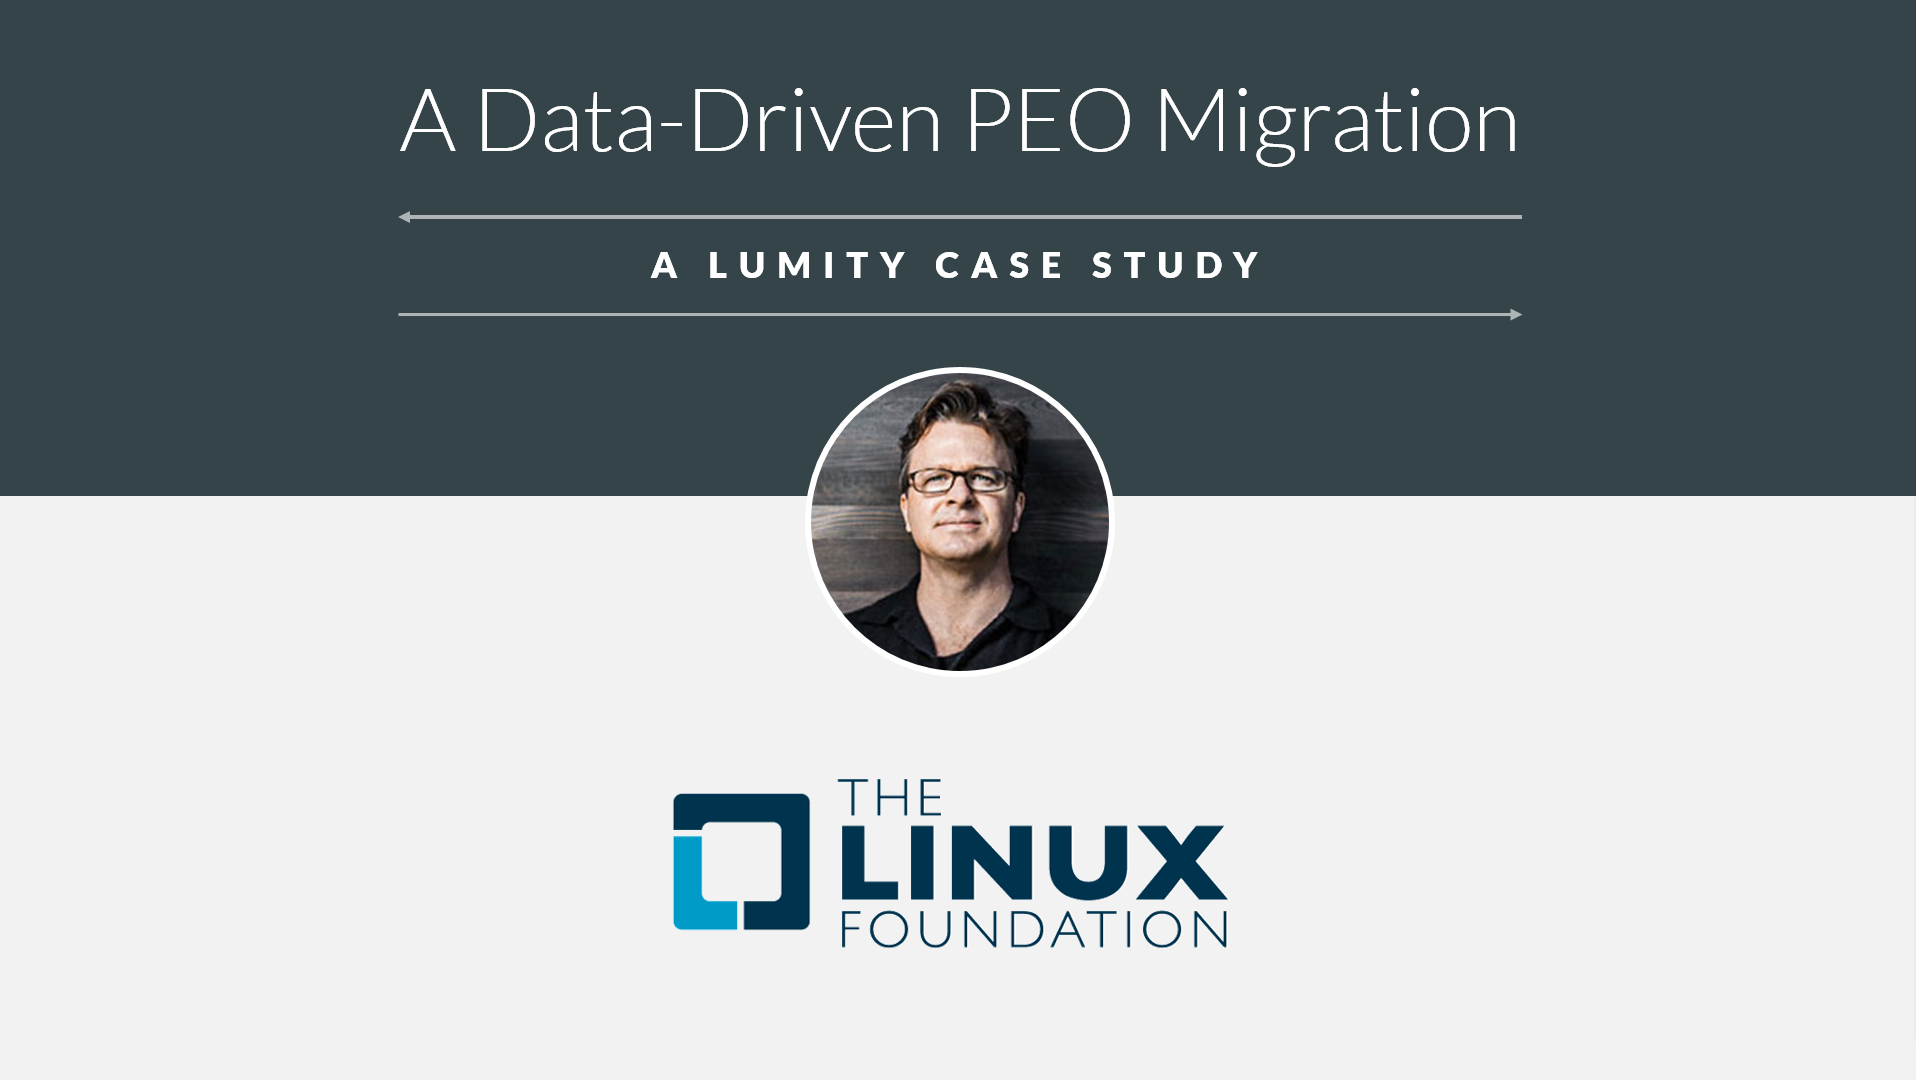 The Linux Foundation's Data-Driven PEO Migration